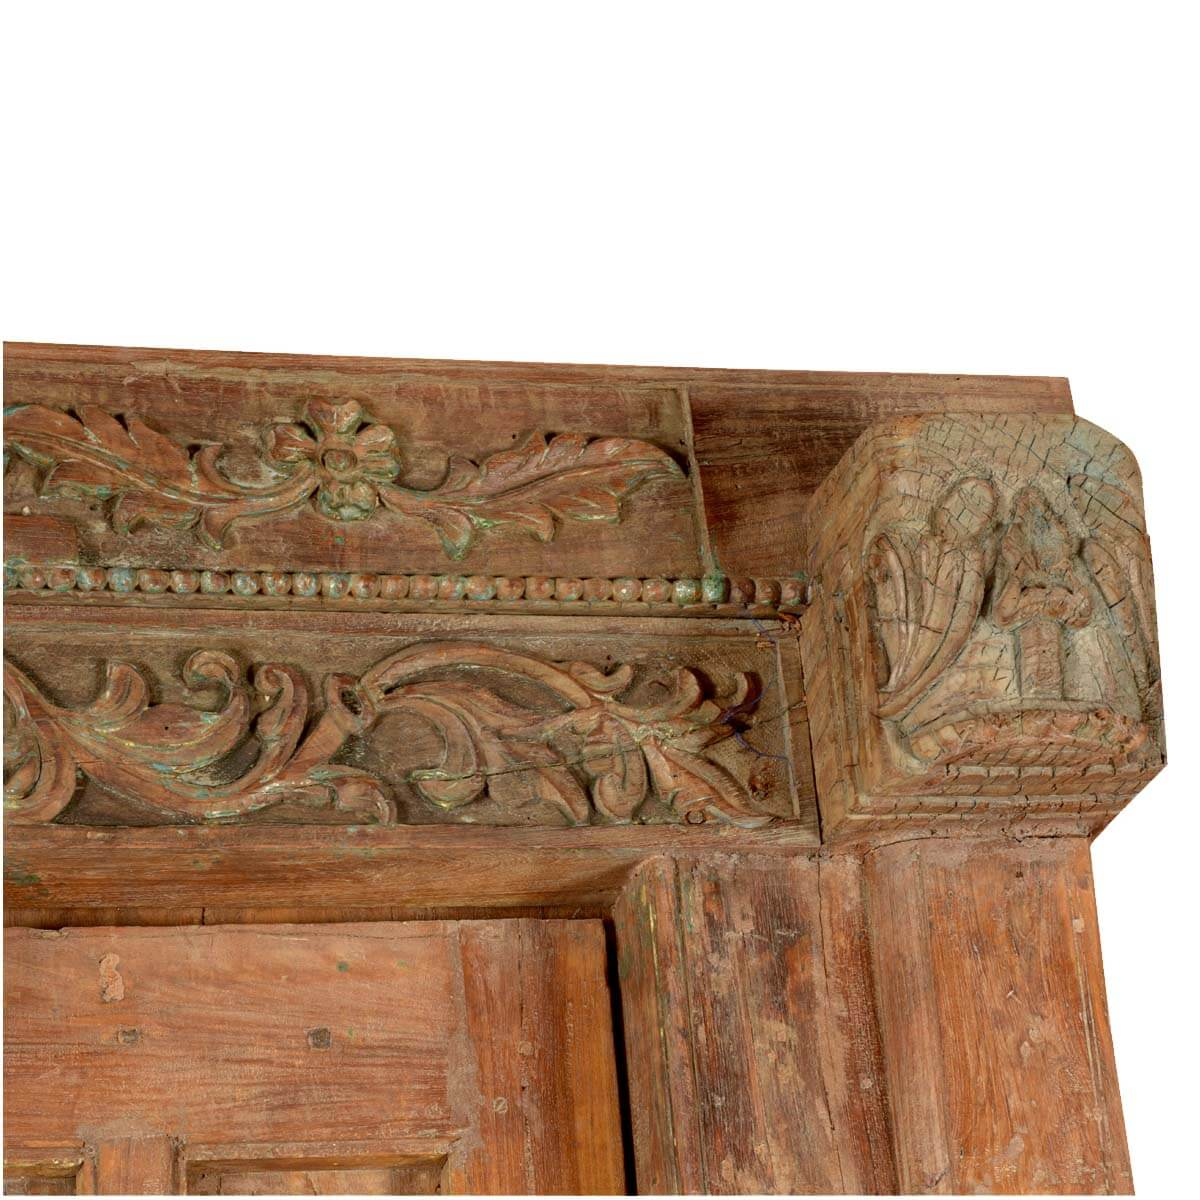 Rustic gothic reclaimed wood hand carved double door frame for Hand carved wood doors